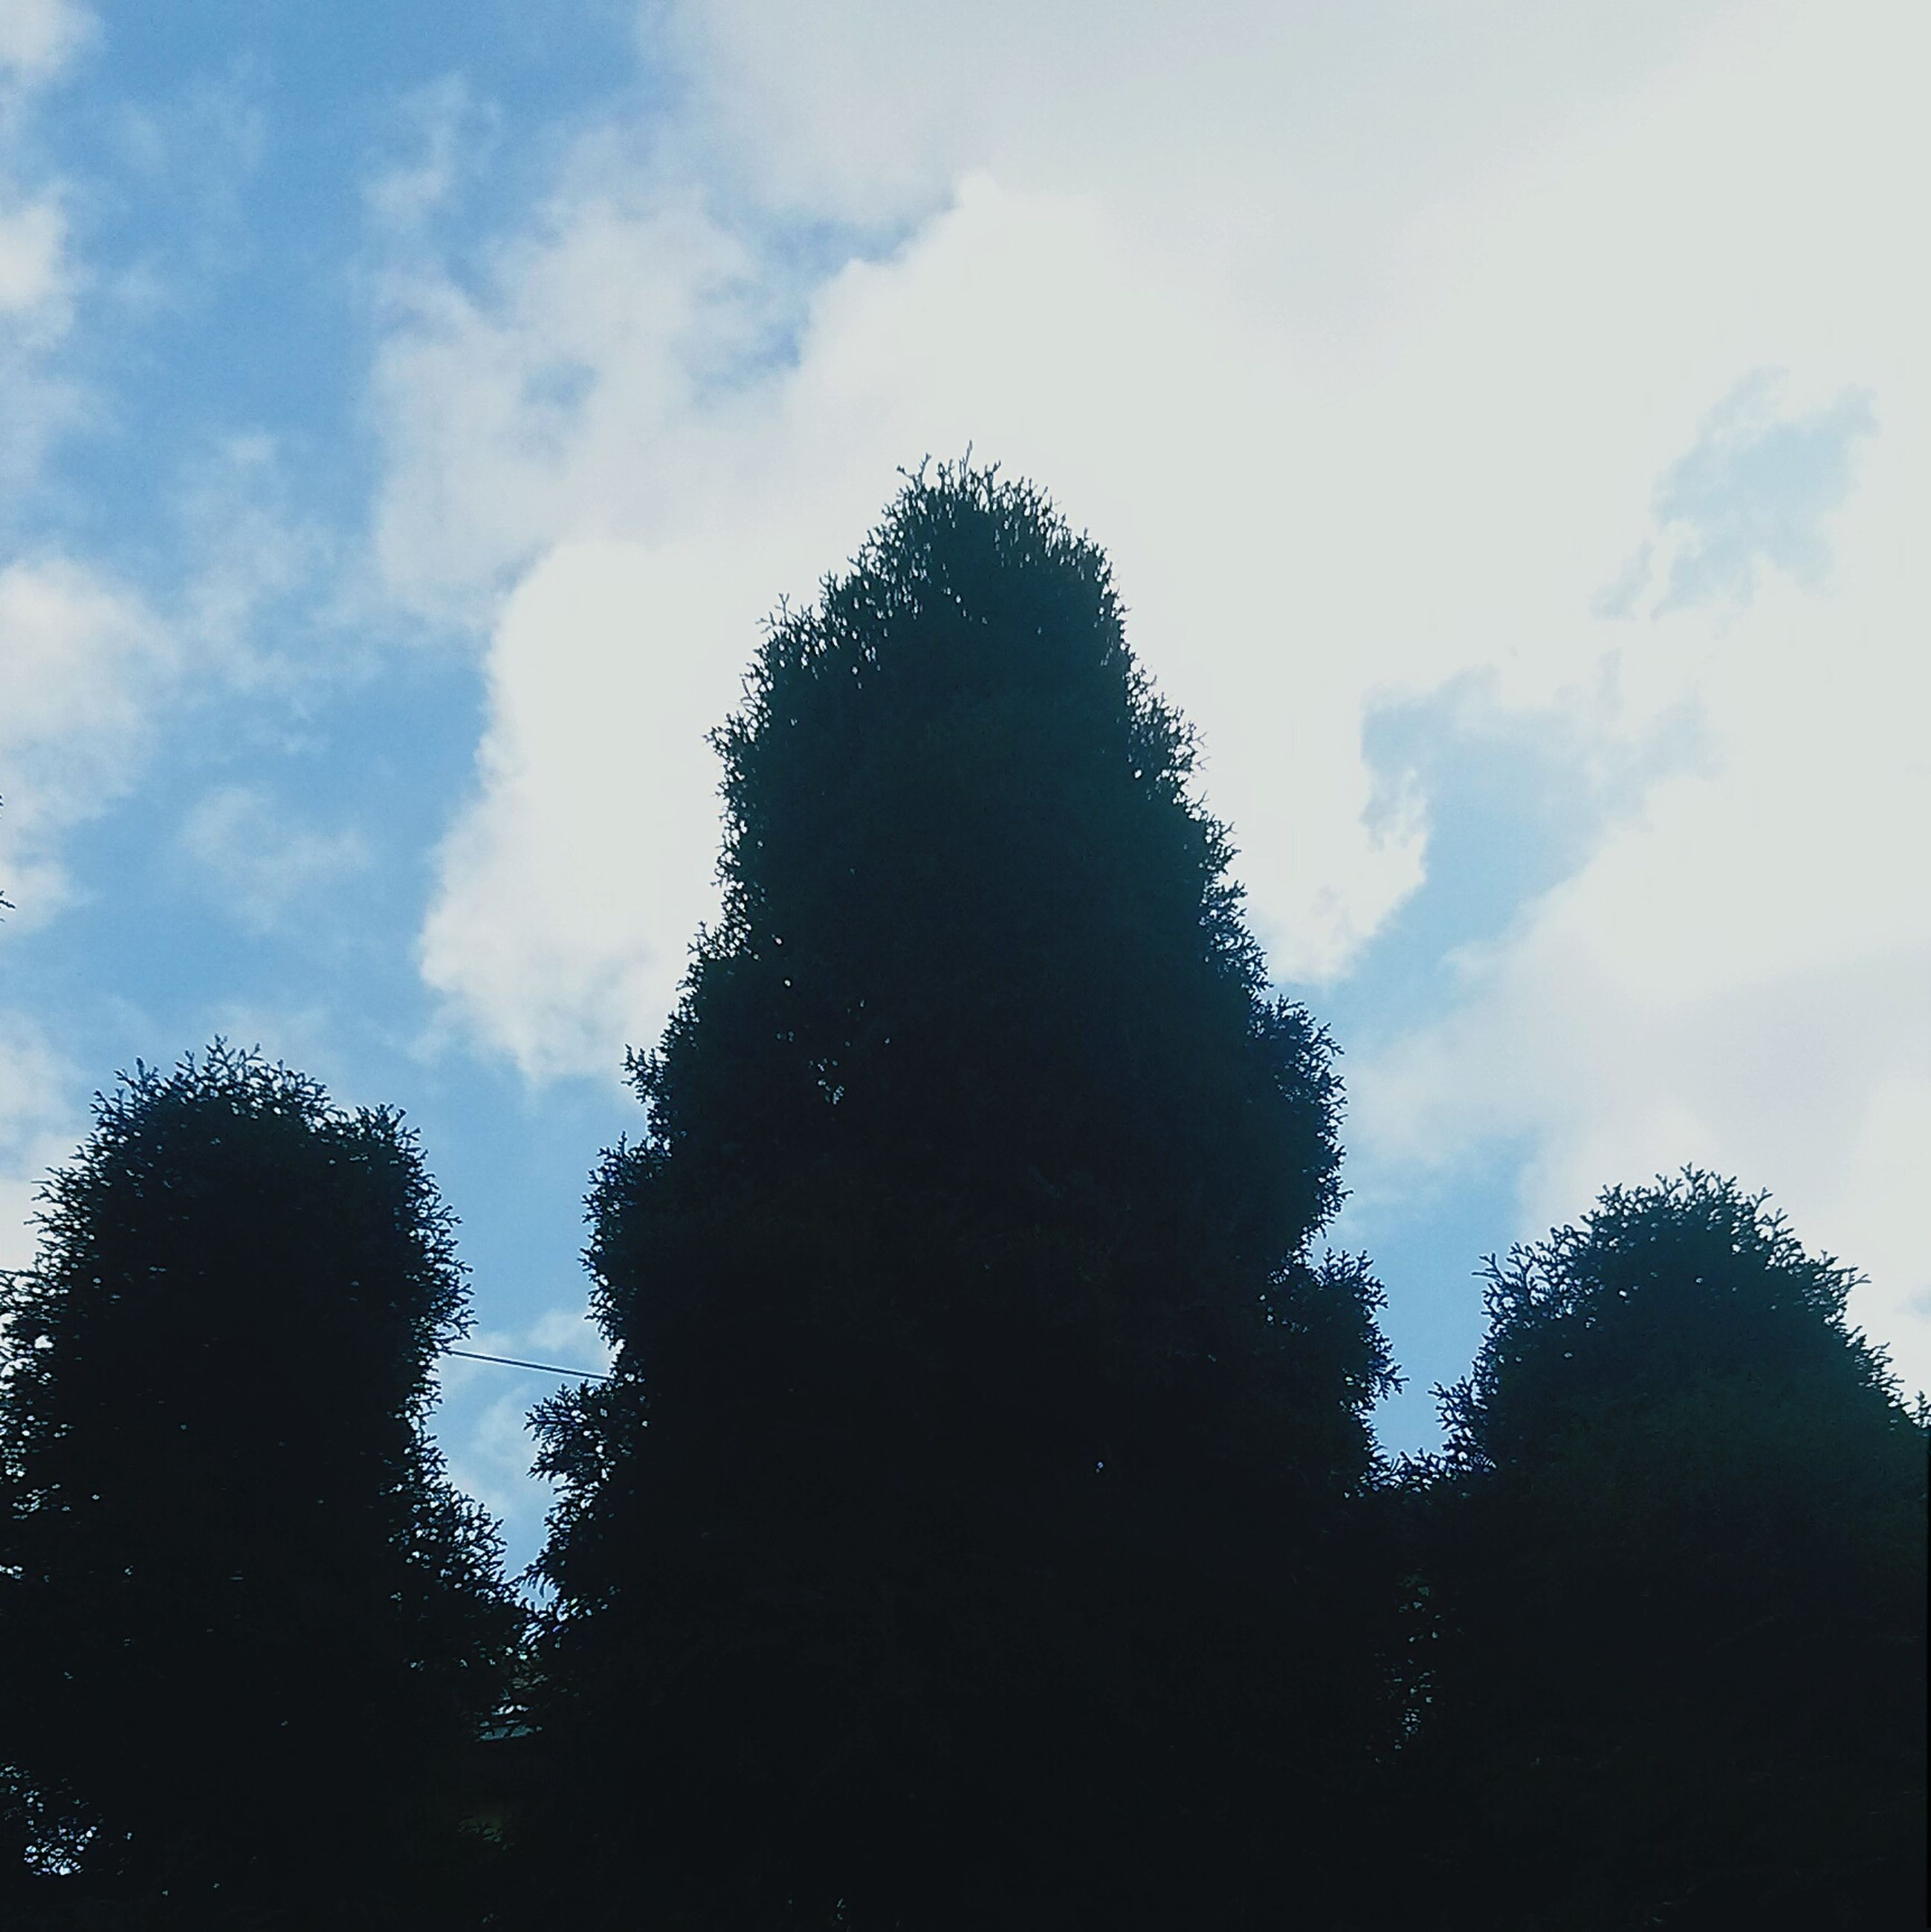 low angle view, tree, sky, silhouette, growth, cloud - sky, tranquility, nature, beauty in nature, cloud, branch, scenics, cloudy, tranquil scene, outdoors, no people, day, high section, treetop, tree trunk